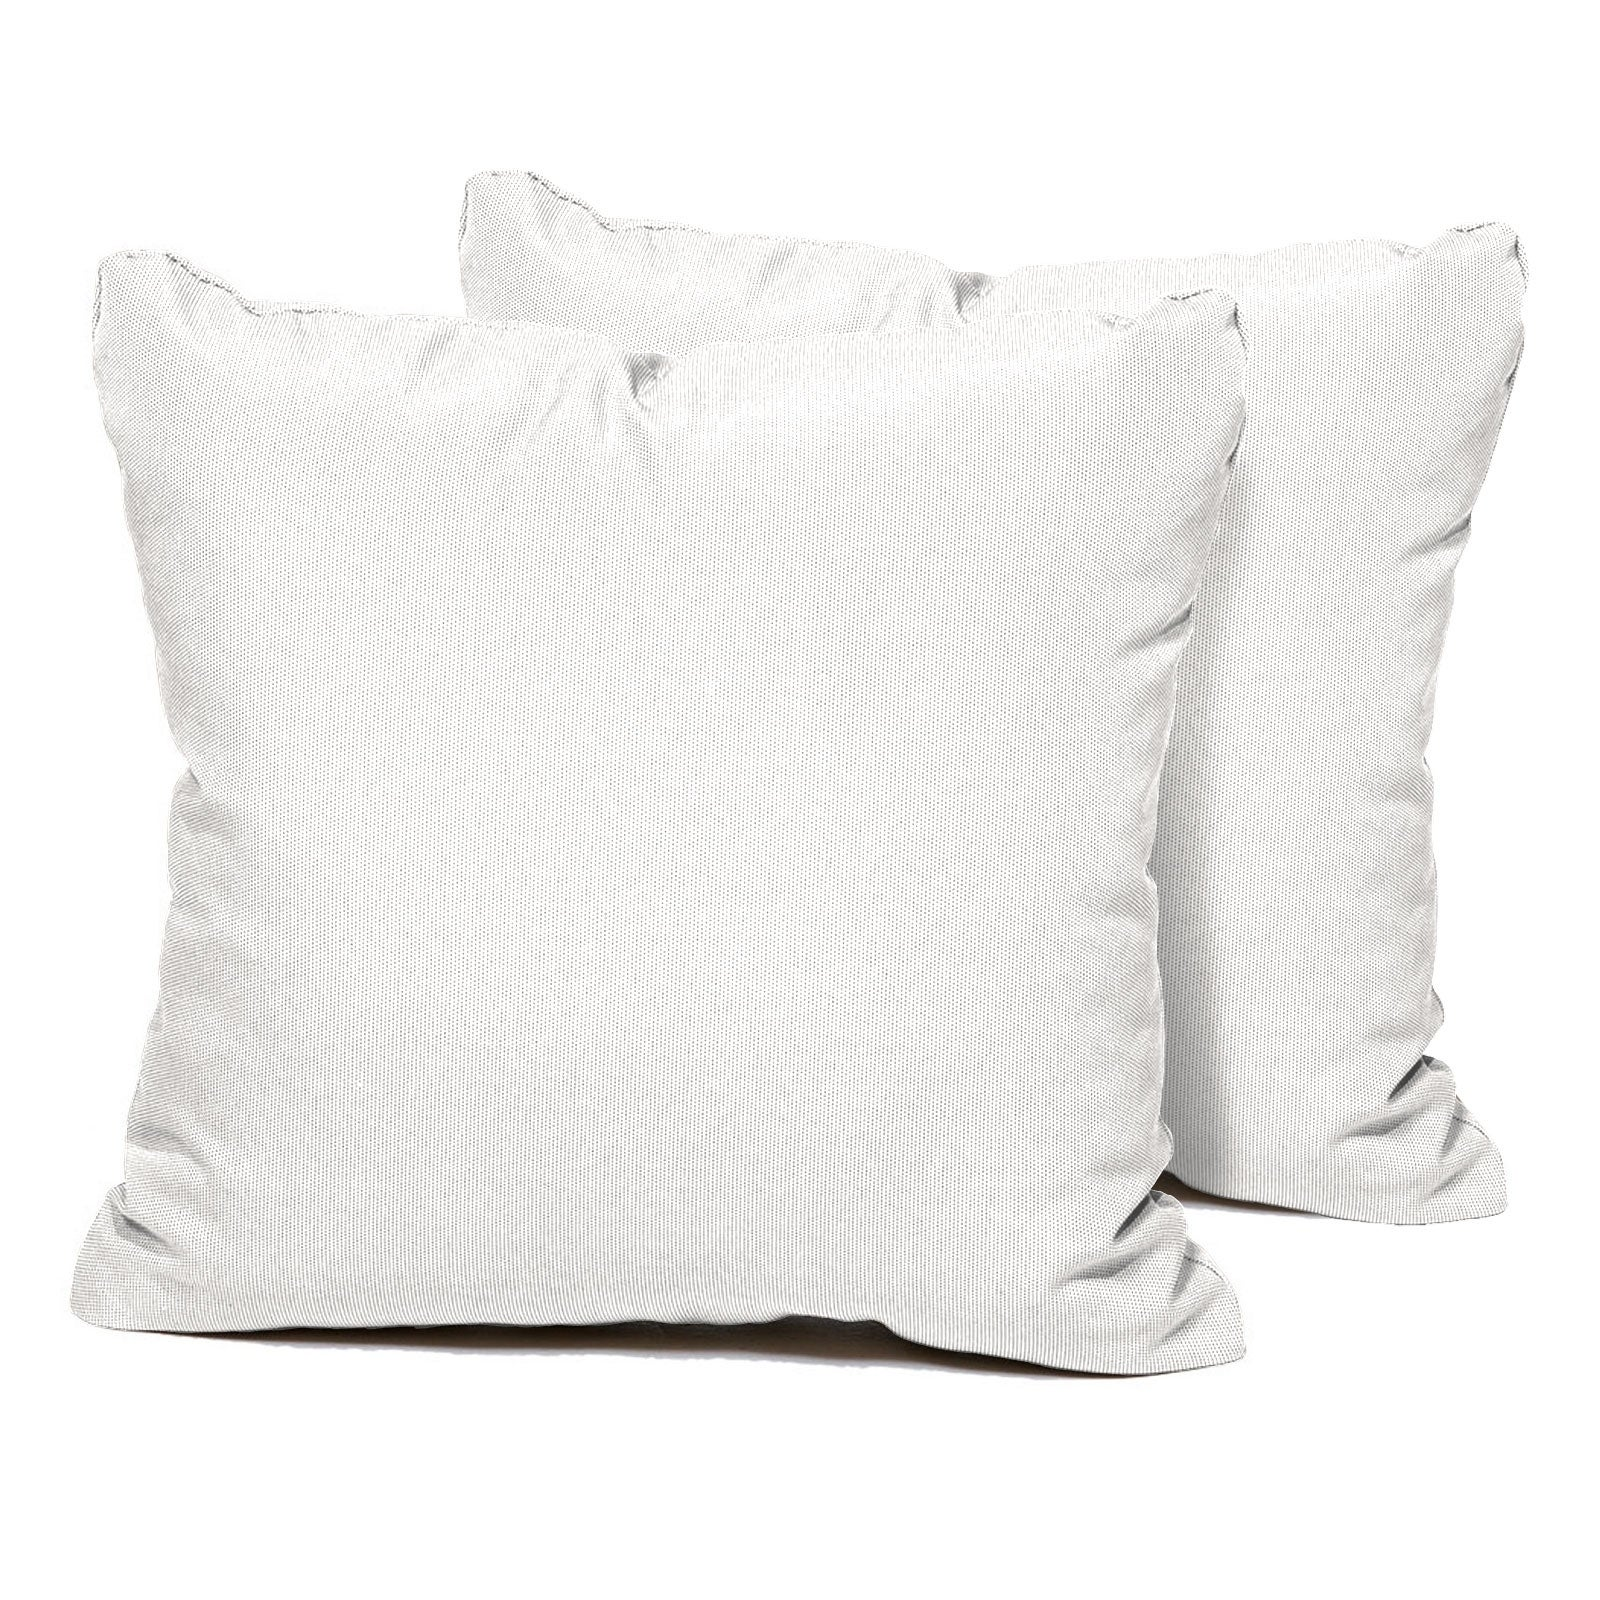 Sail White Outdoor Throw Pillows Square Set Of 2 On Sale Overstock 19420088